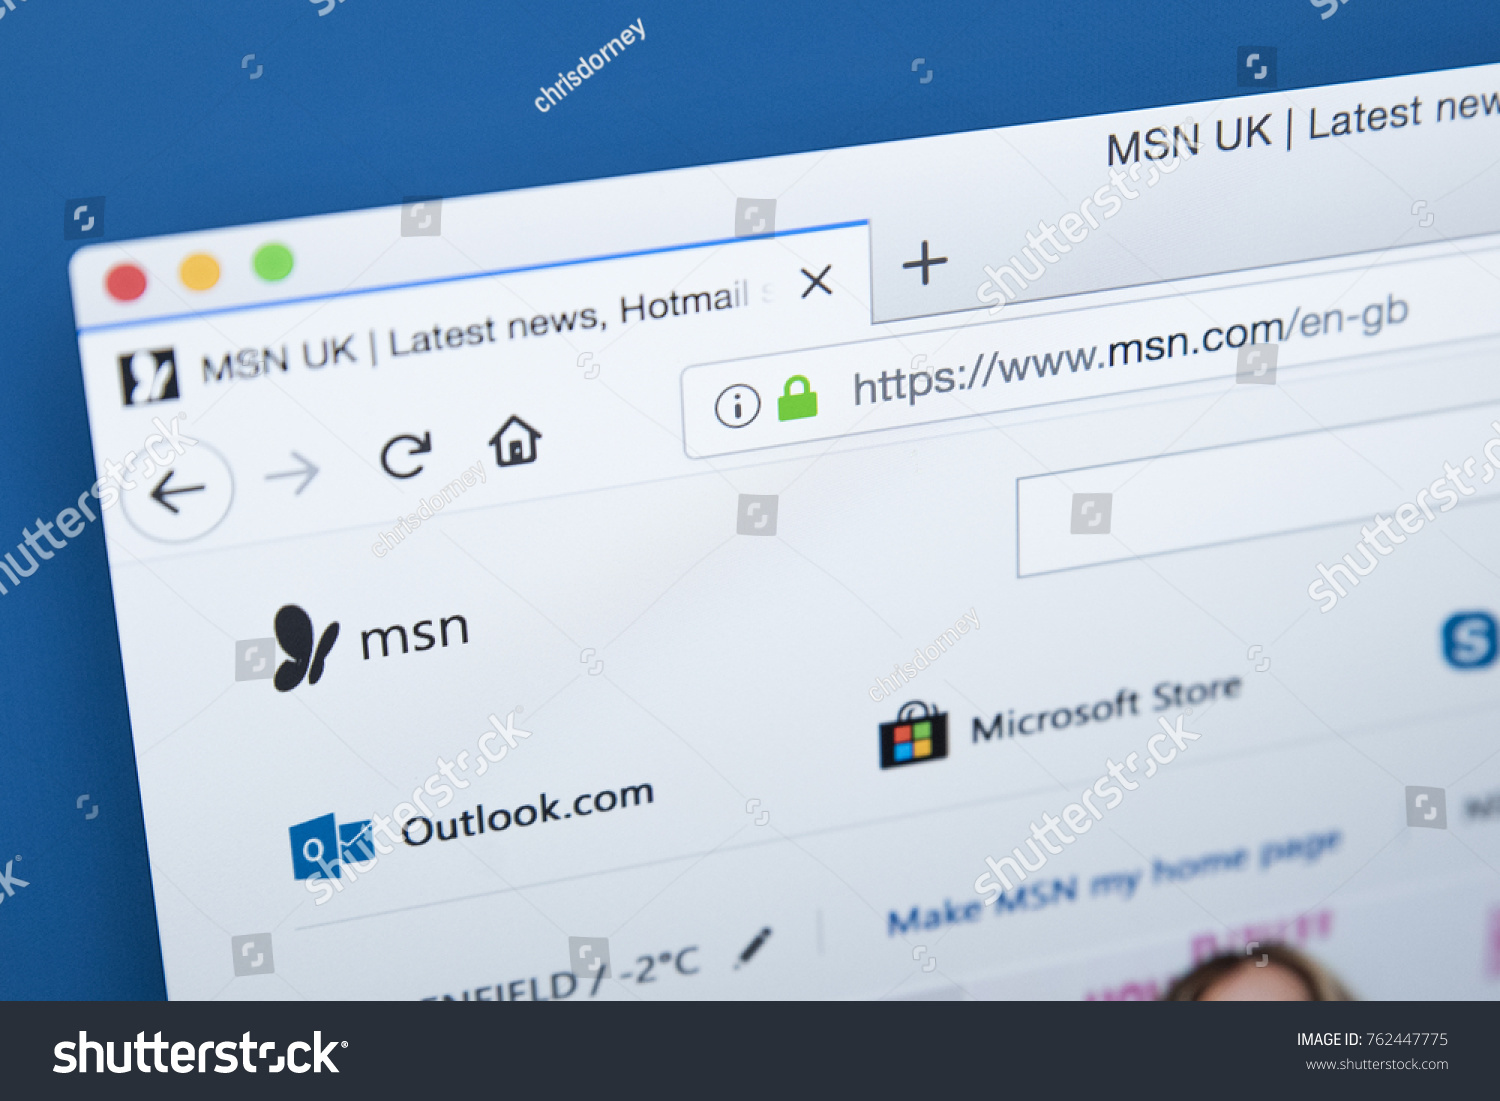 MSN UK  Hotmailcouk sign in Messenger Skype and